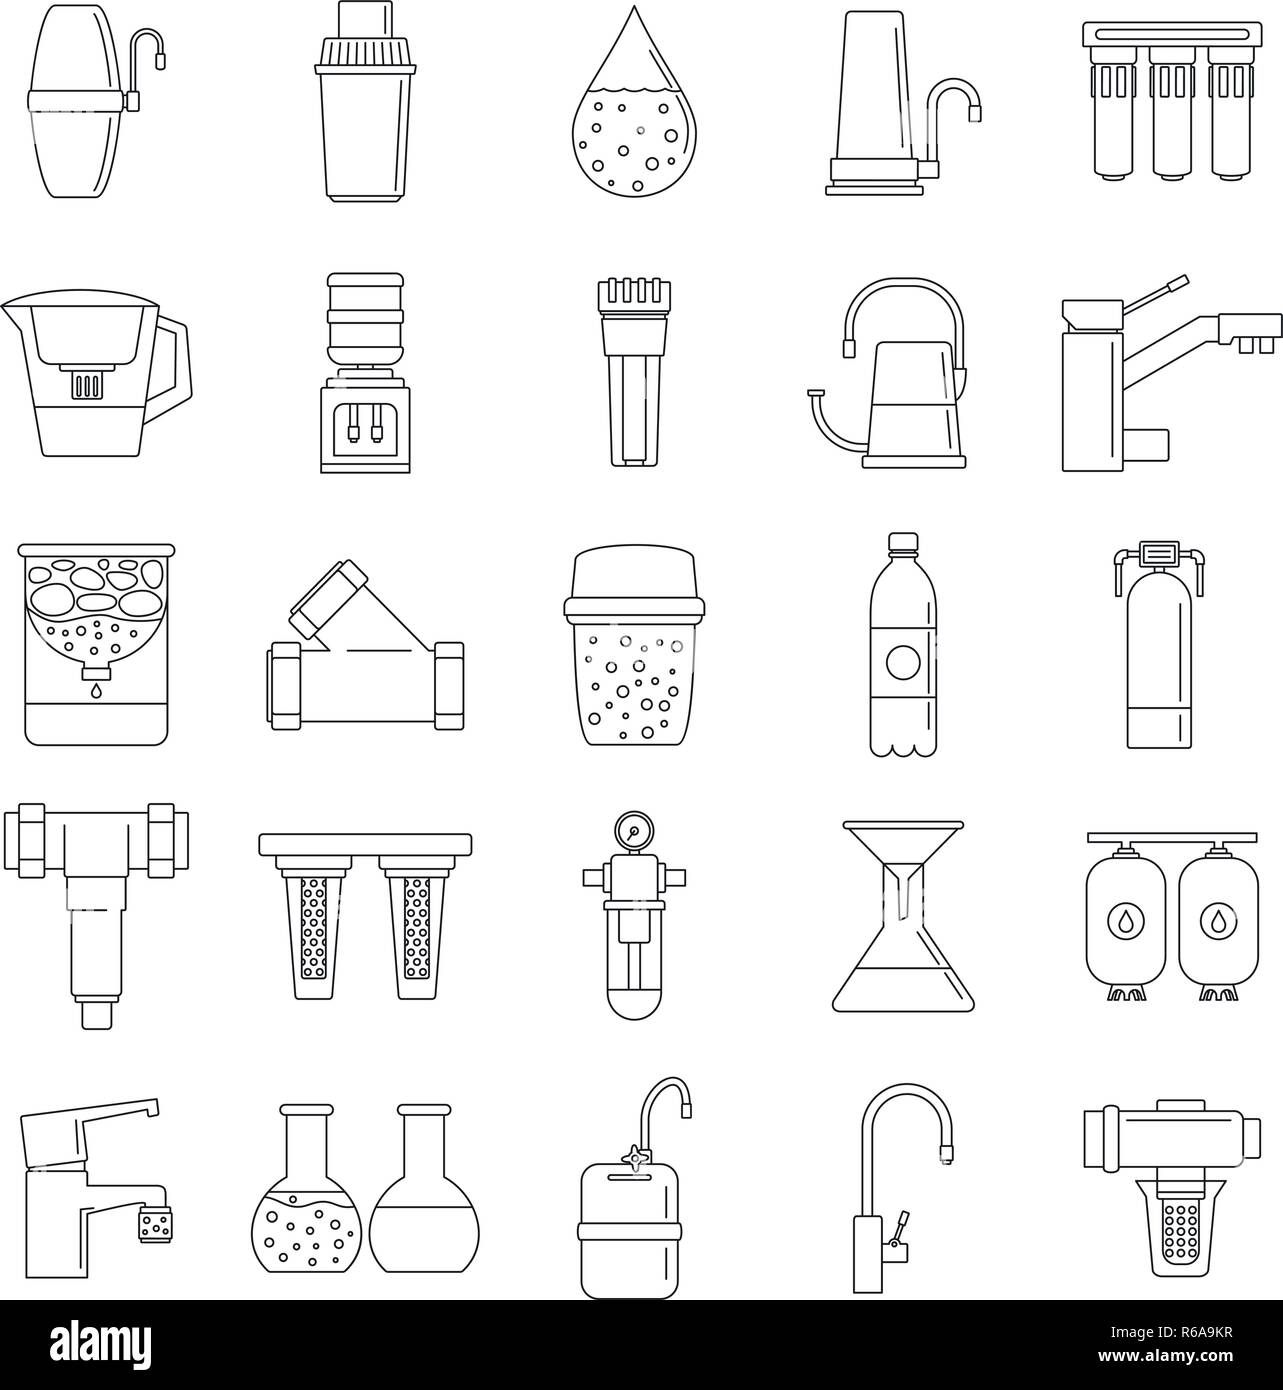 Filter water system icon set. Outline set of filter water system vector icons for web design isolated on white background - Stock Image